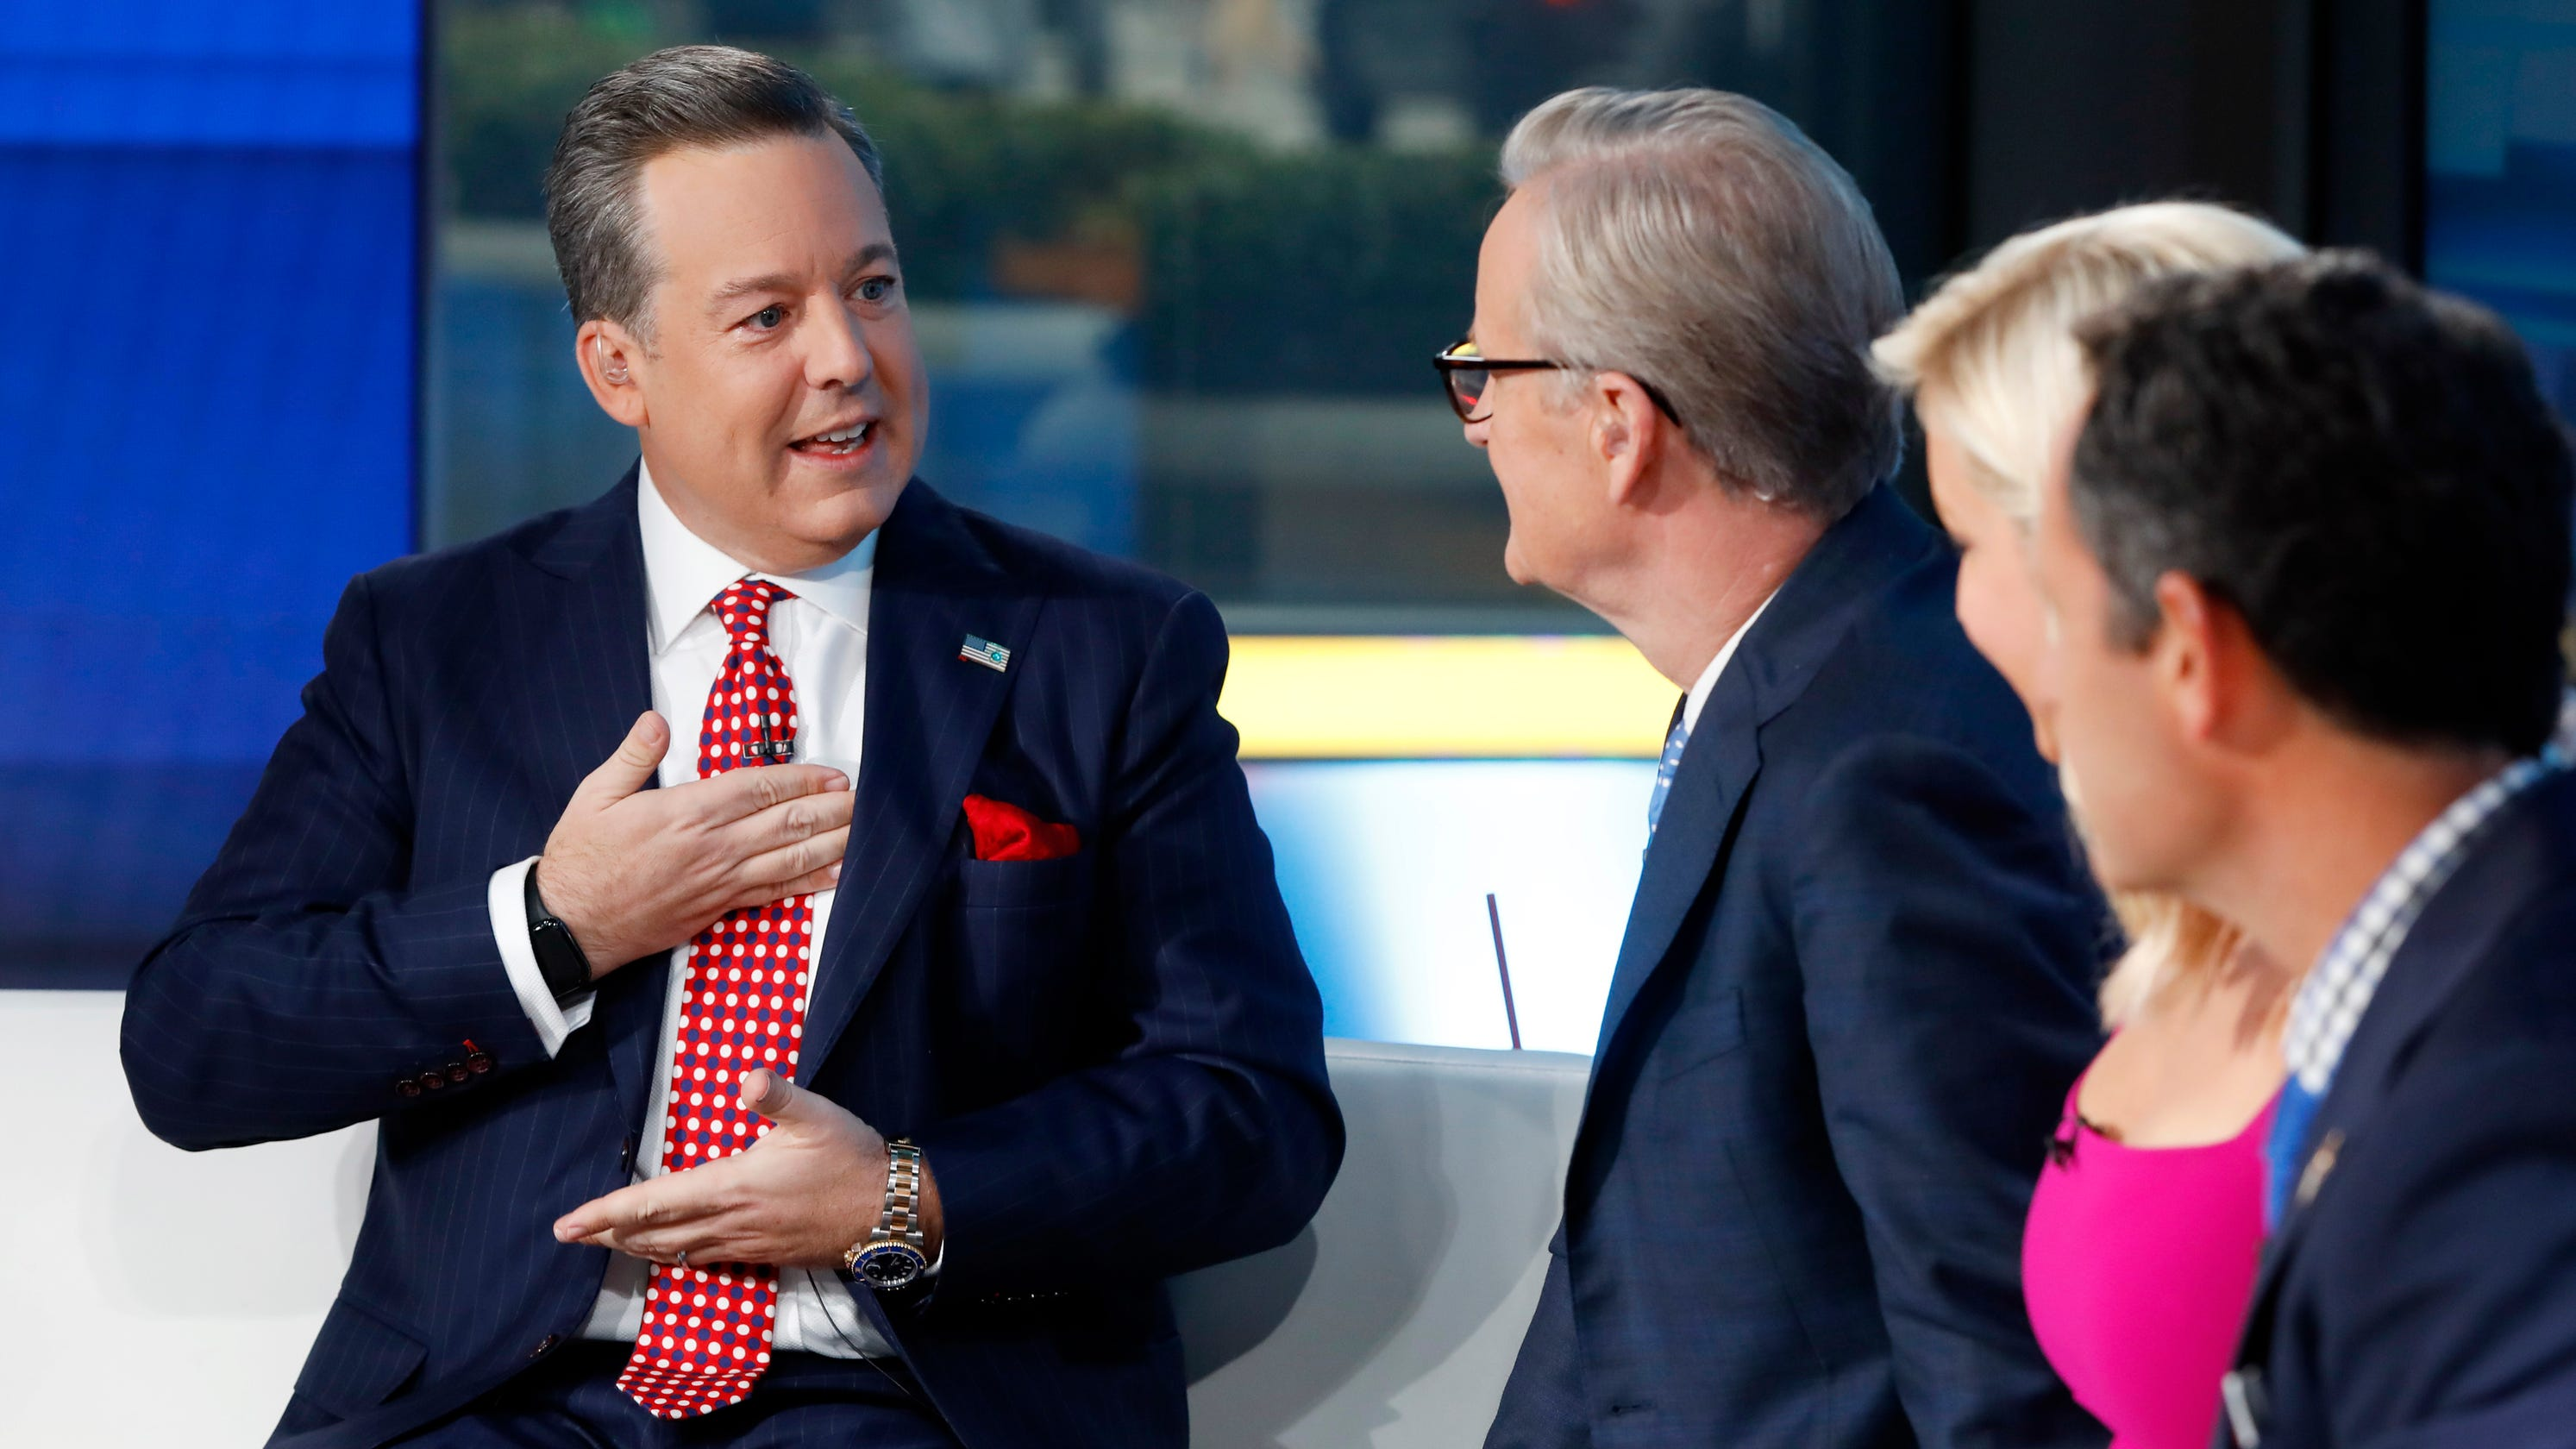 Ed Henry accused of rape in civil suit that also targets Fox News Sean Hannity and Tucker Carlson – USA TODAY